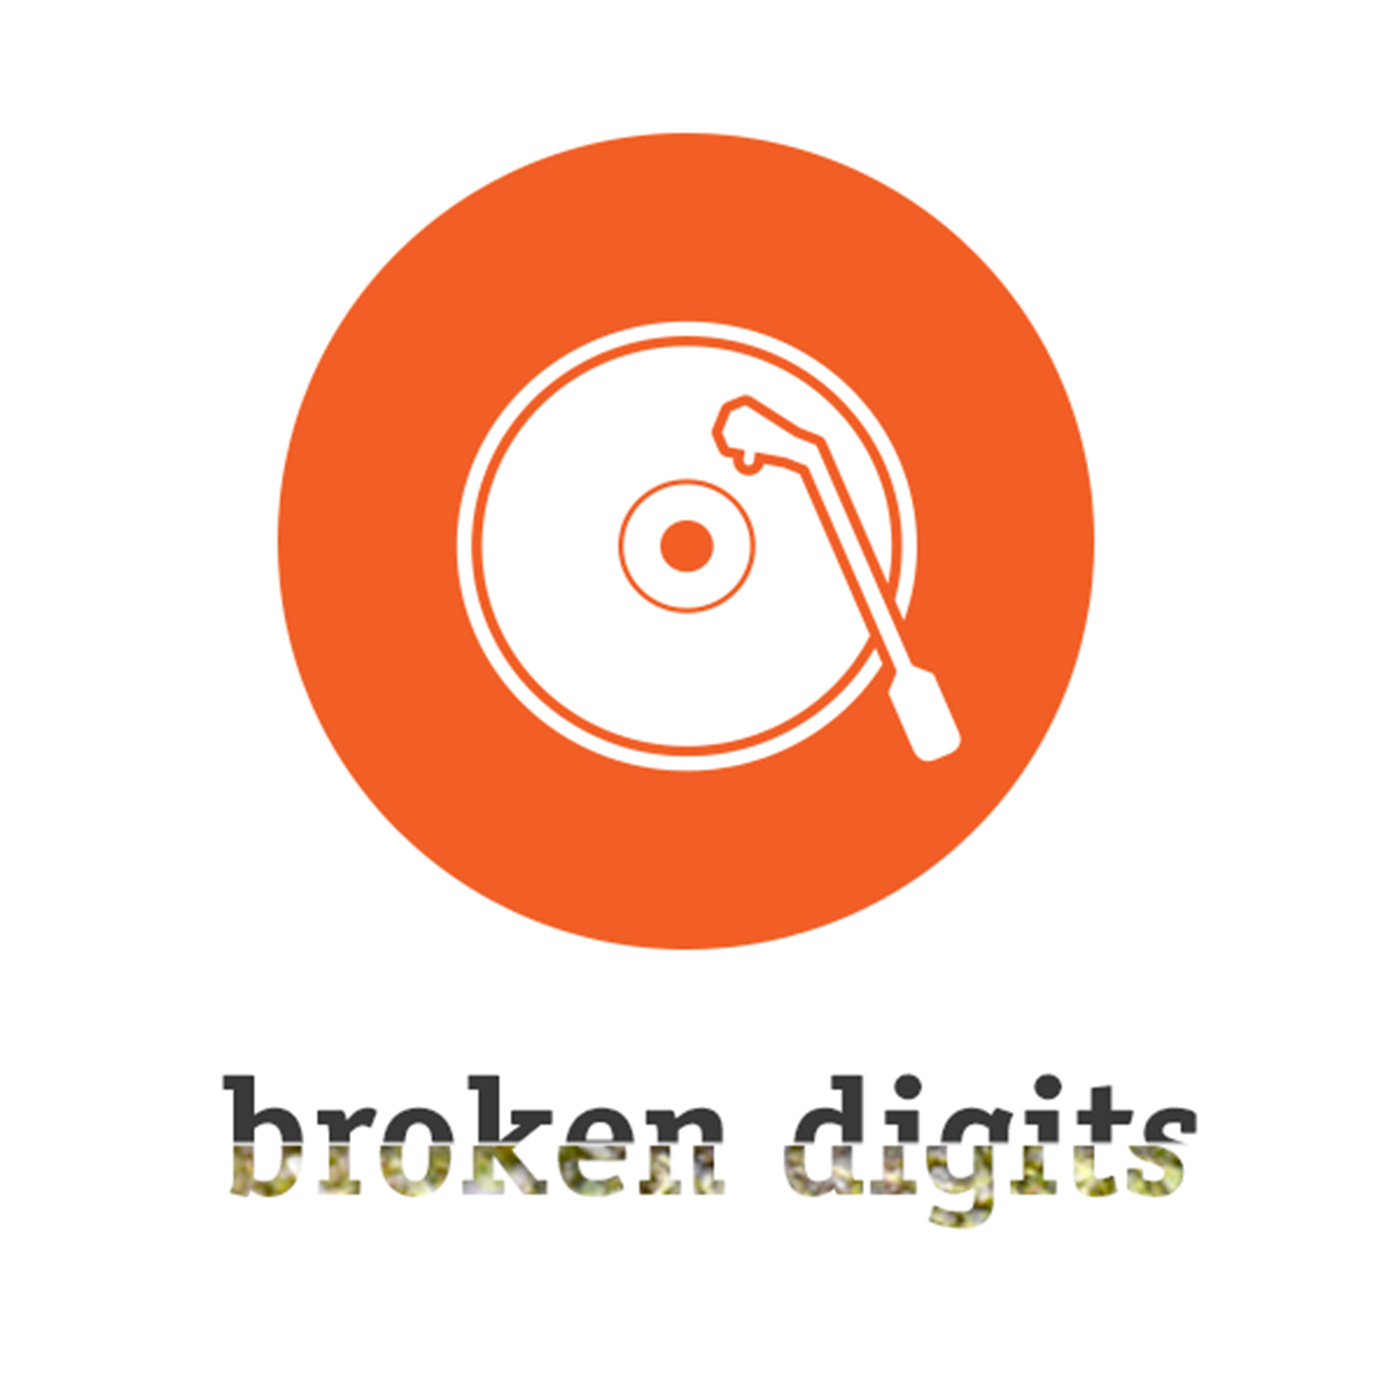 Music – broken digits